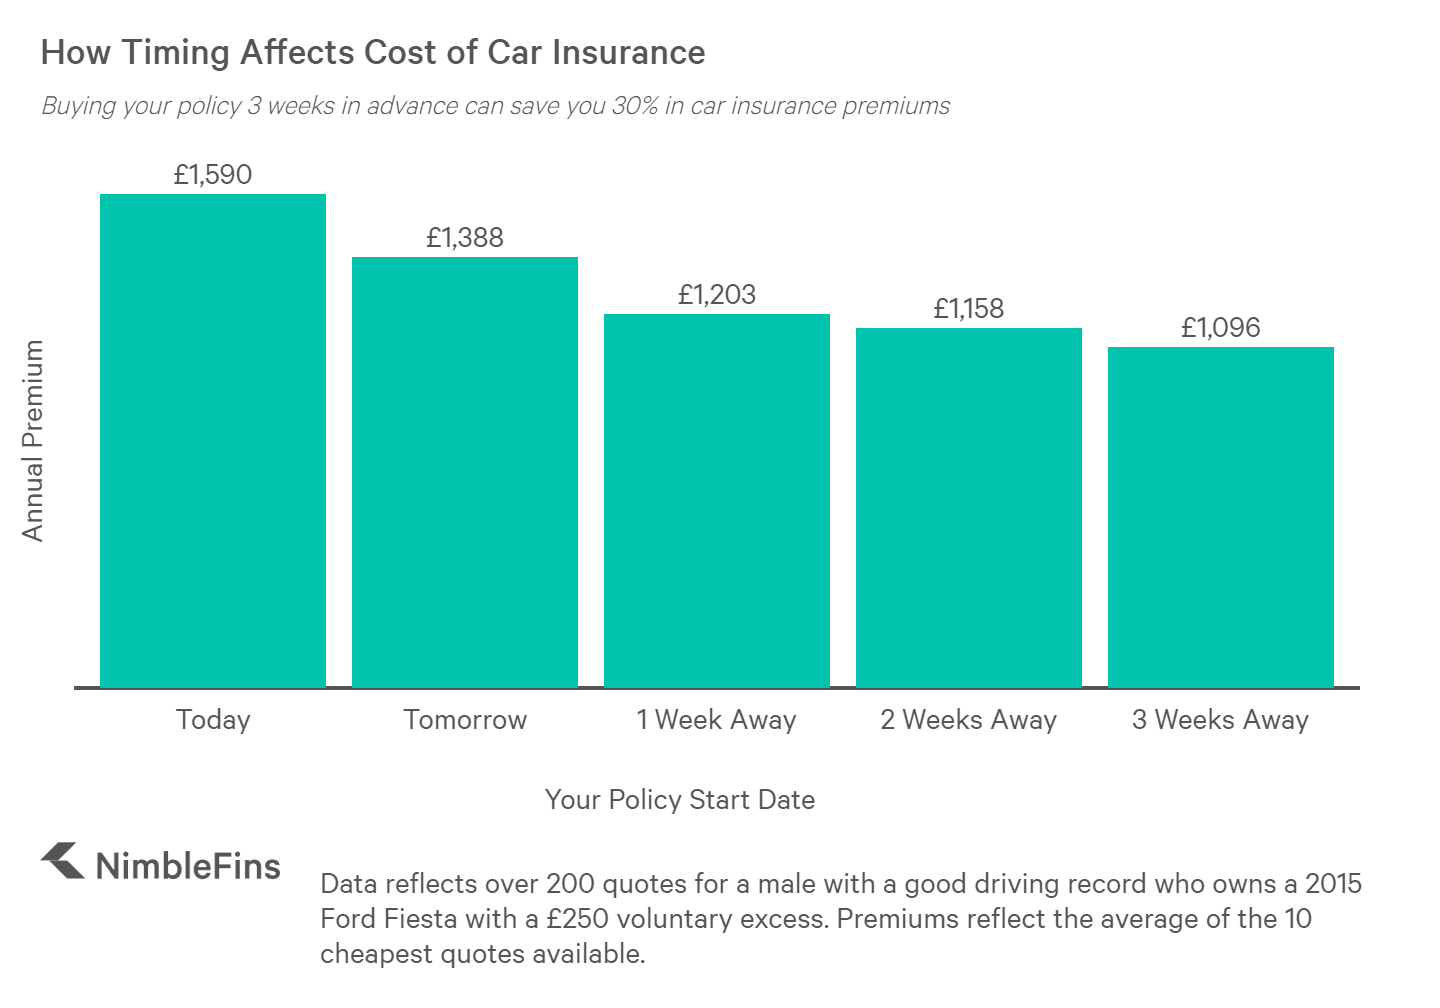 chart showing how car insurance prices decrease the further ahead you buy your policy